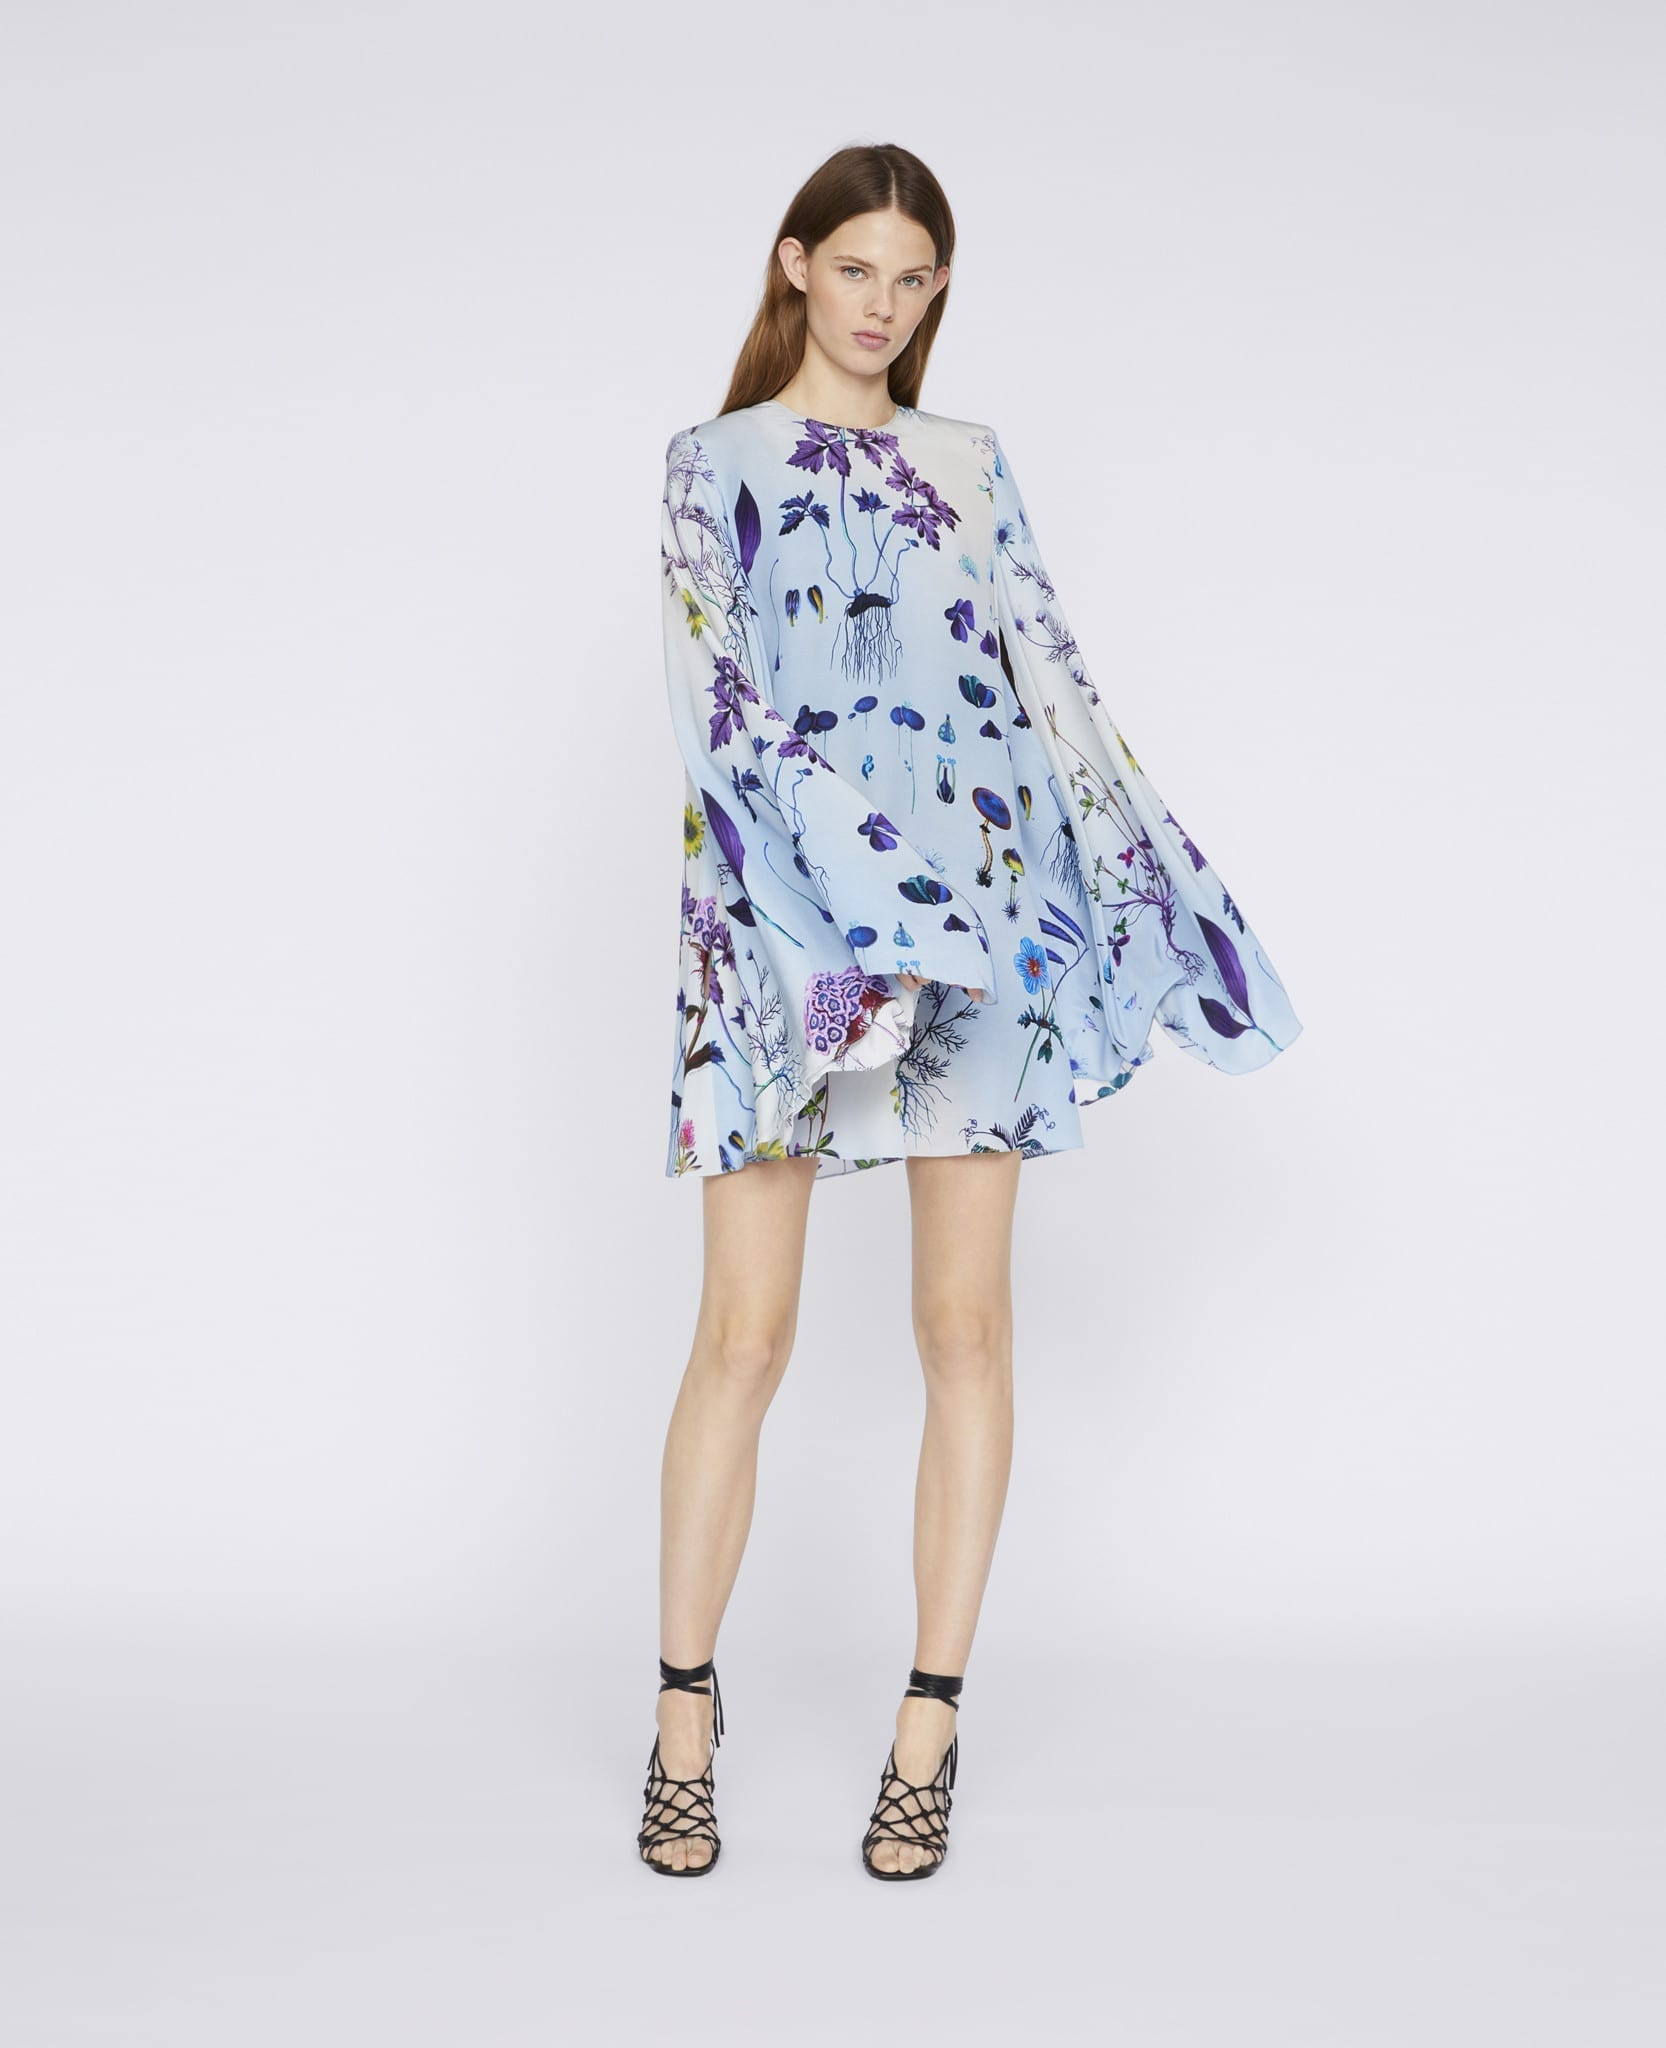 STELLA MCCARTNEY Delia Silk Dress